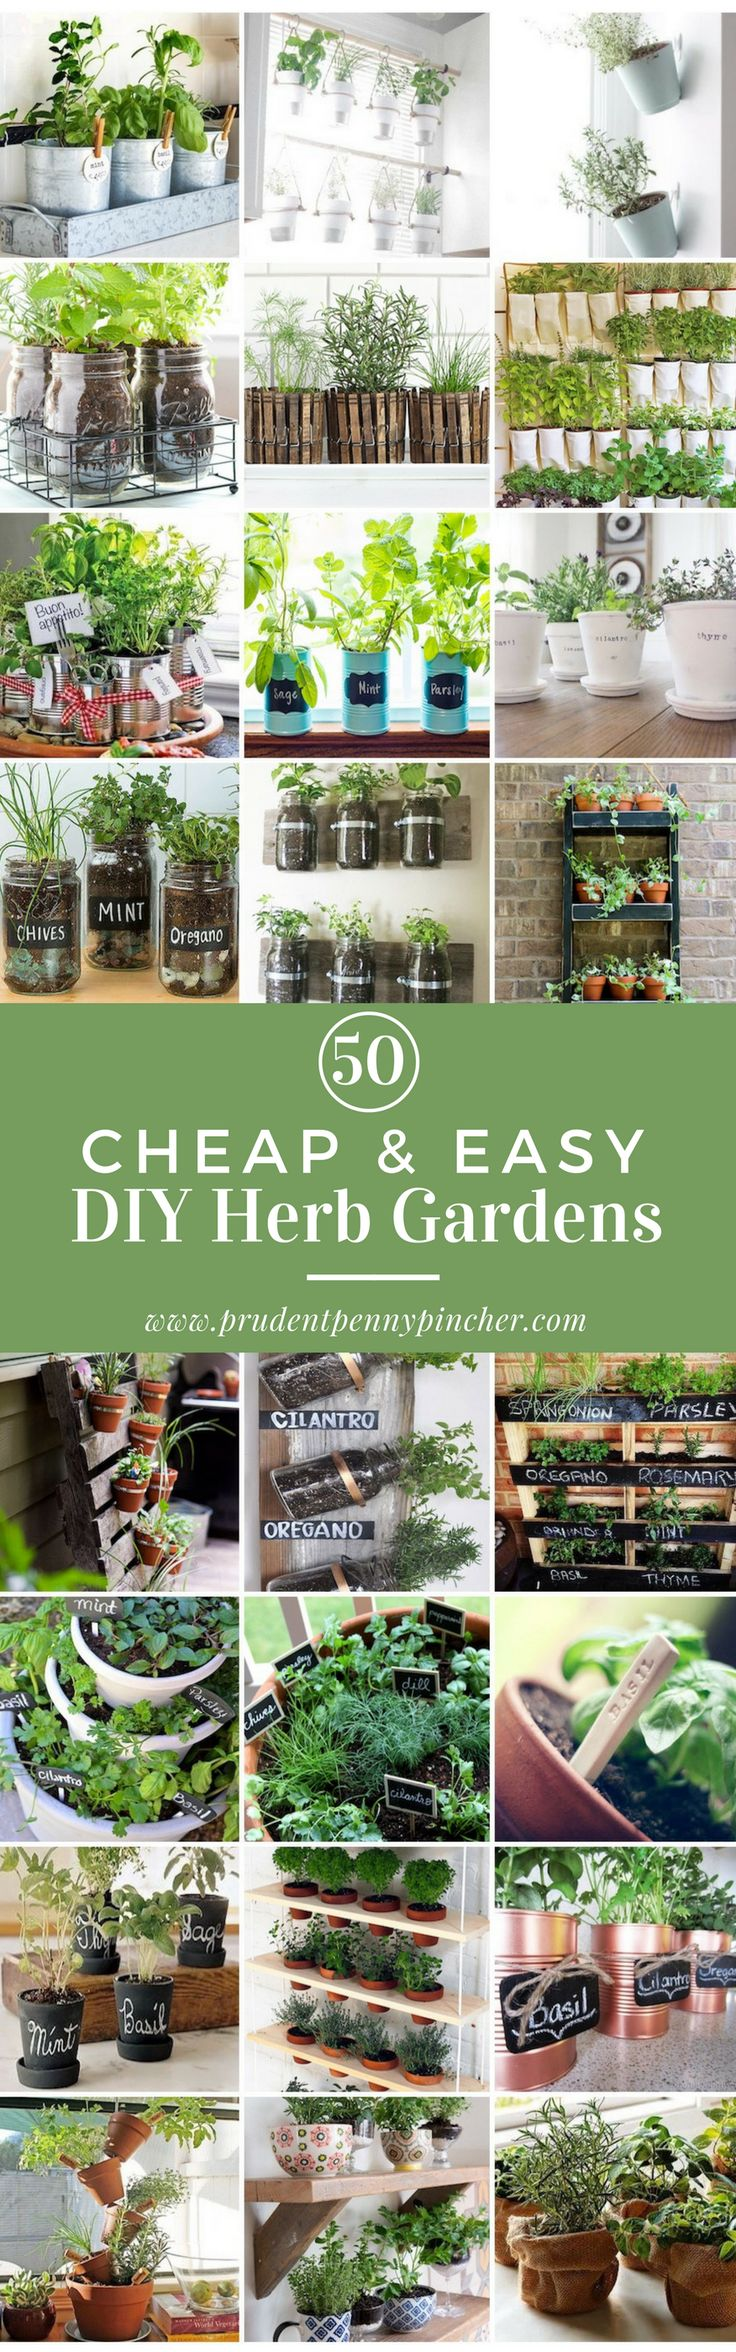 50 cheap and easy diy herb garden ideas